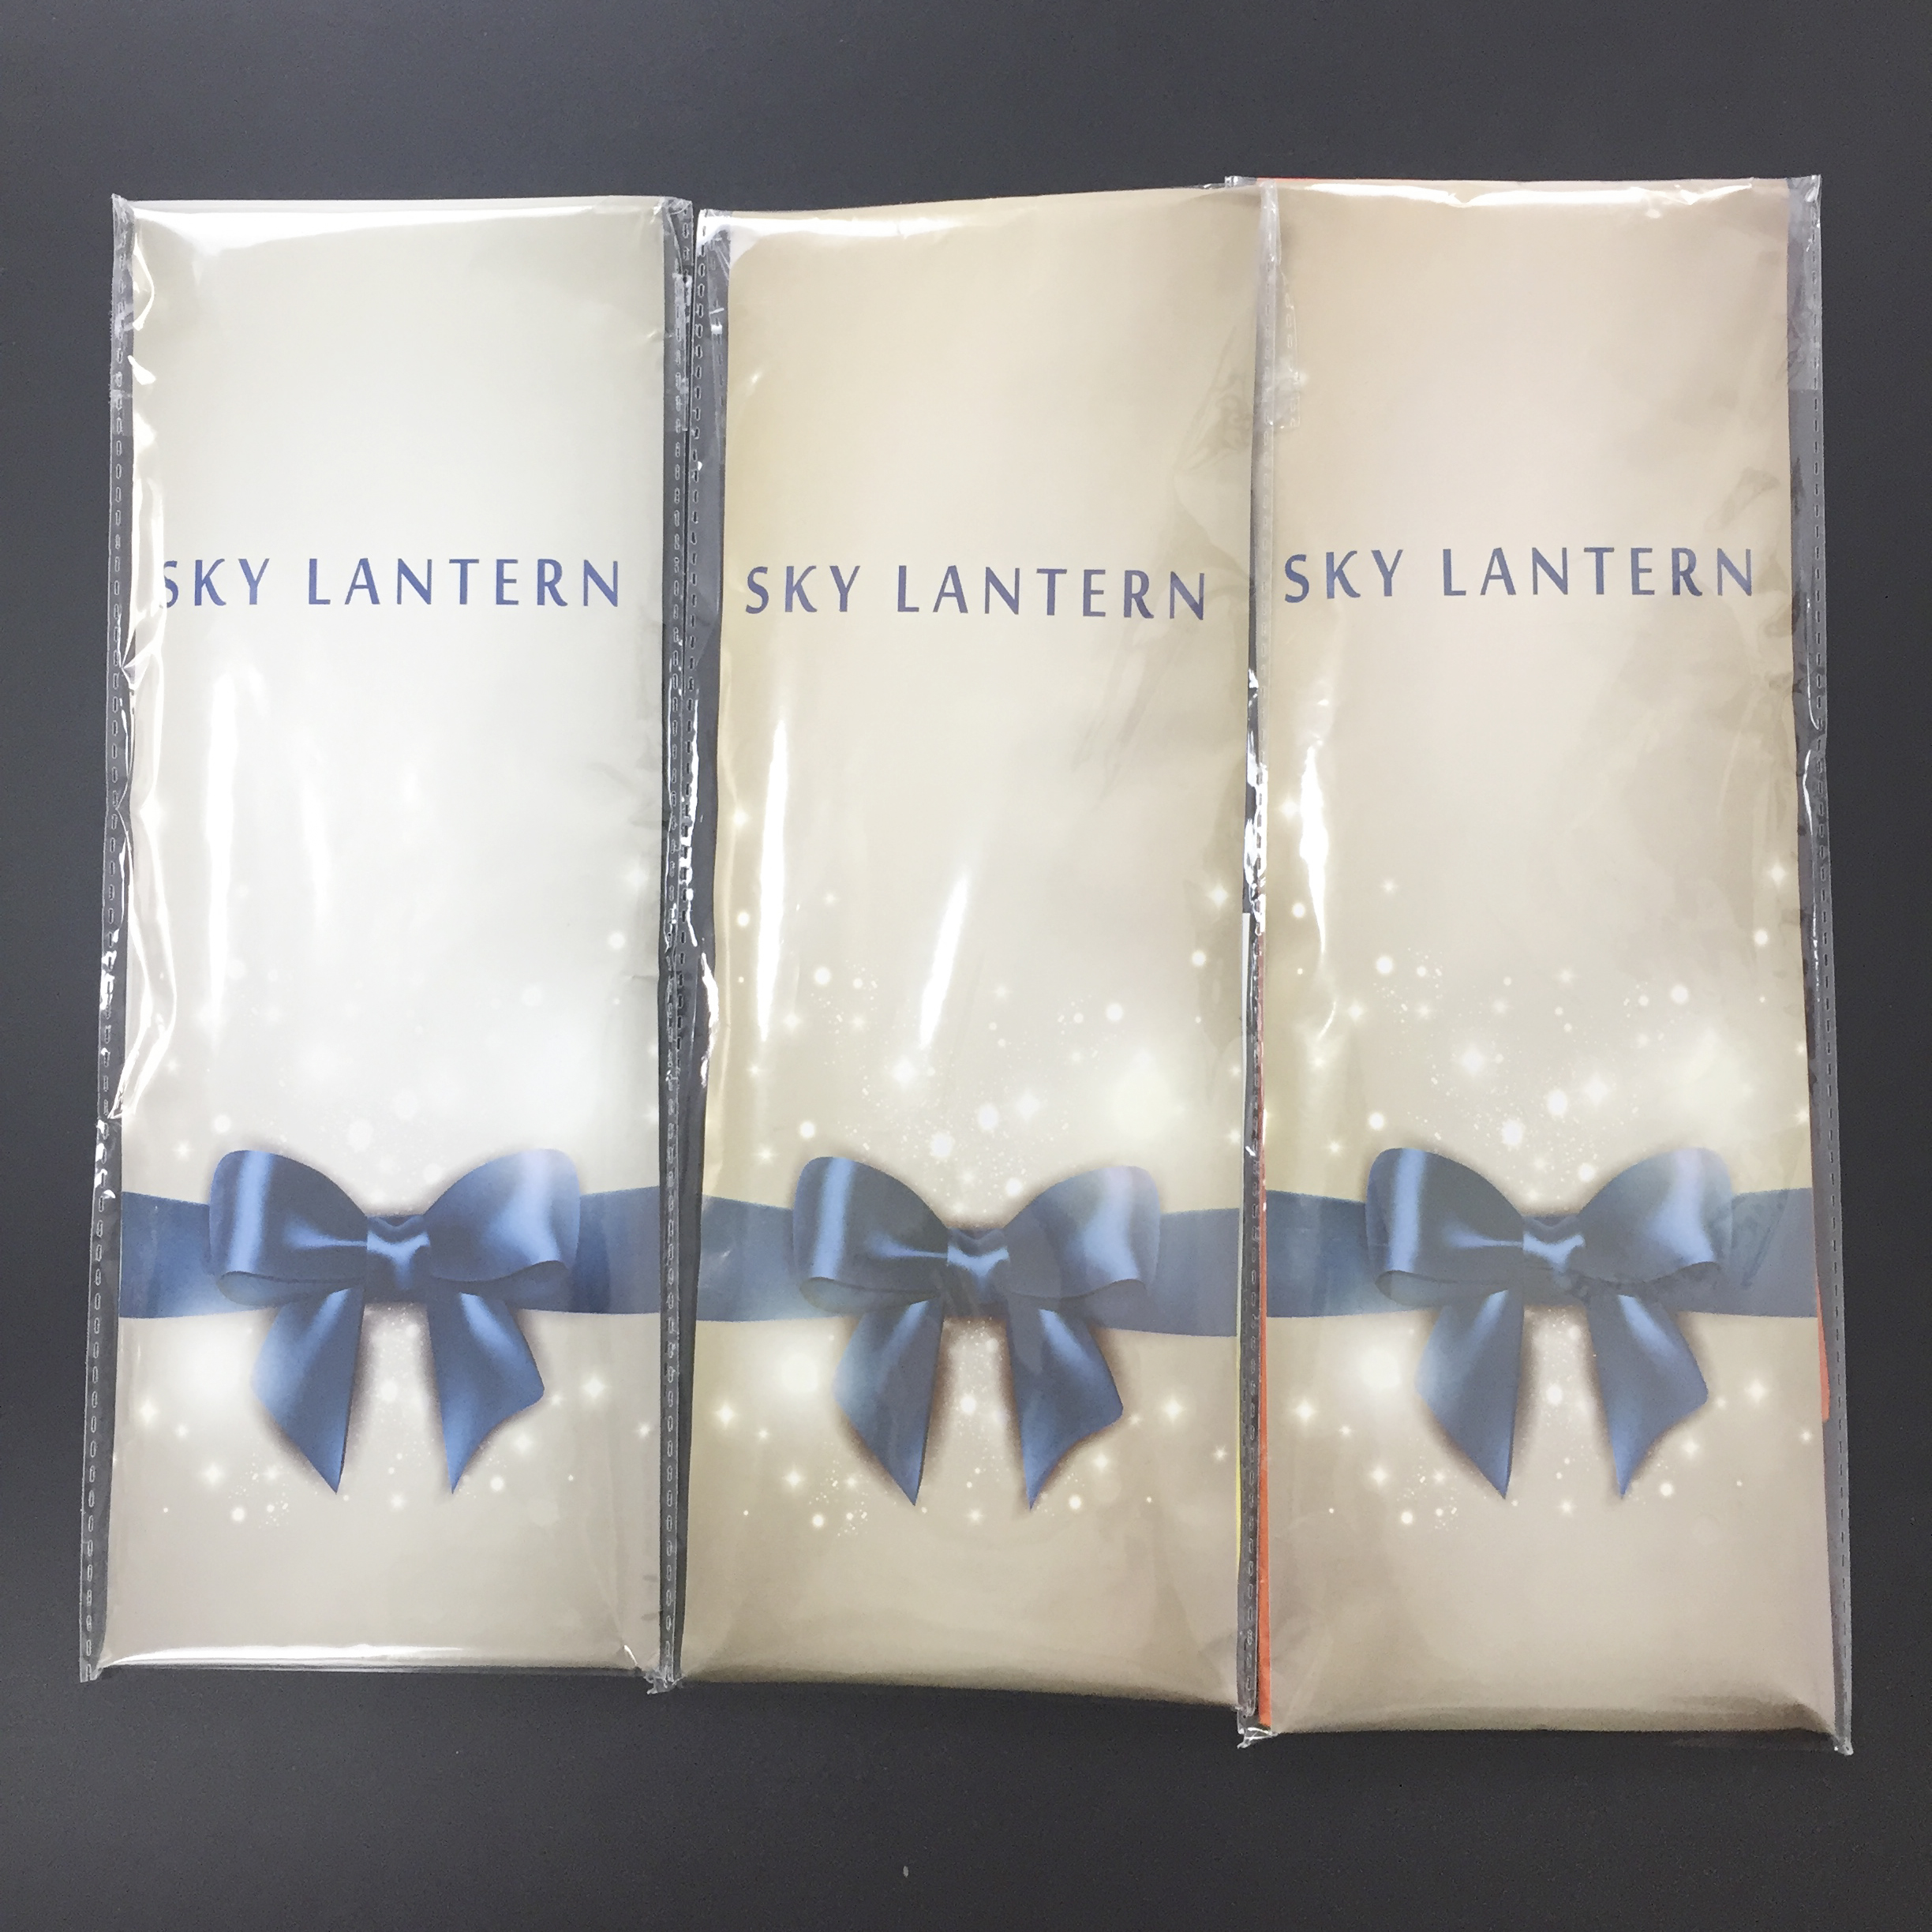 2021 NAMAY New Arrival 100% Biodegradable Foldable Chinese Paper Square Sky Lanterns